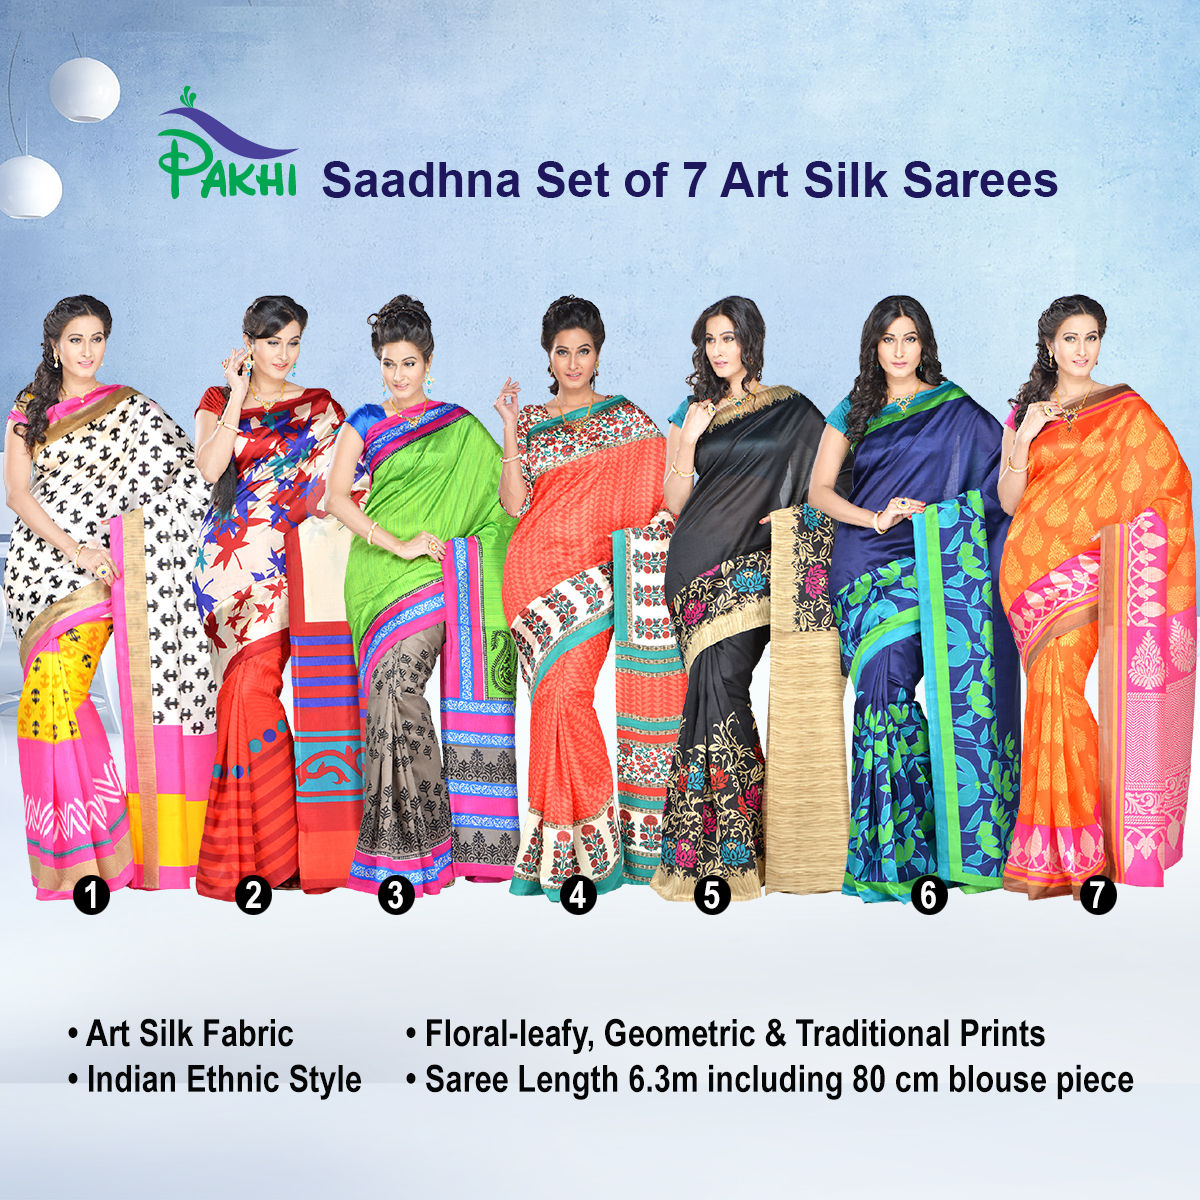 ad8cfc3b7 Buy Saadhna Set of 7 Art Silk Sarees by Pakhi (7A11) Online at Best Price  in India on Naaptol.com